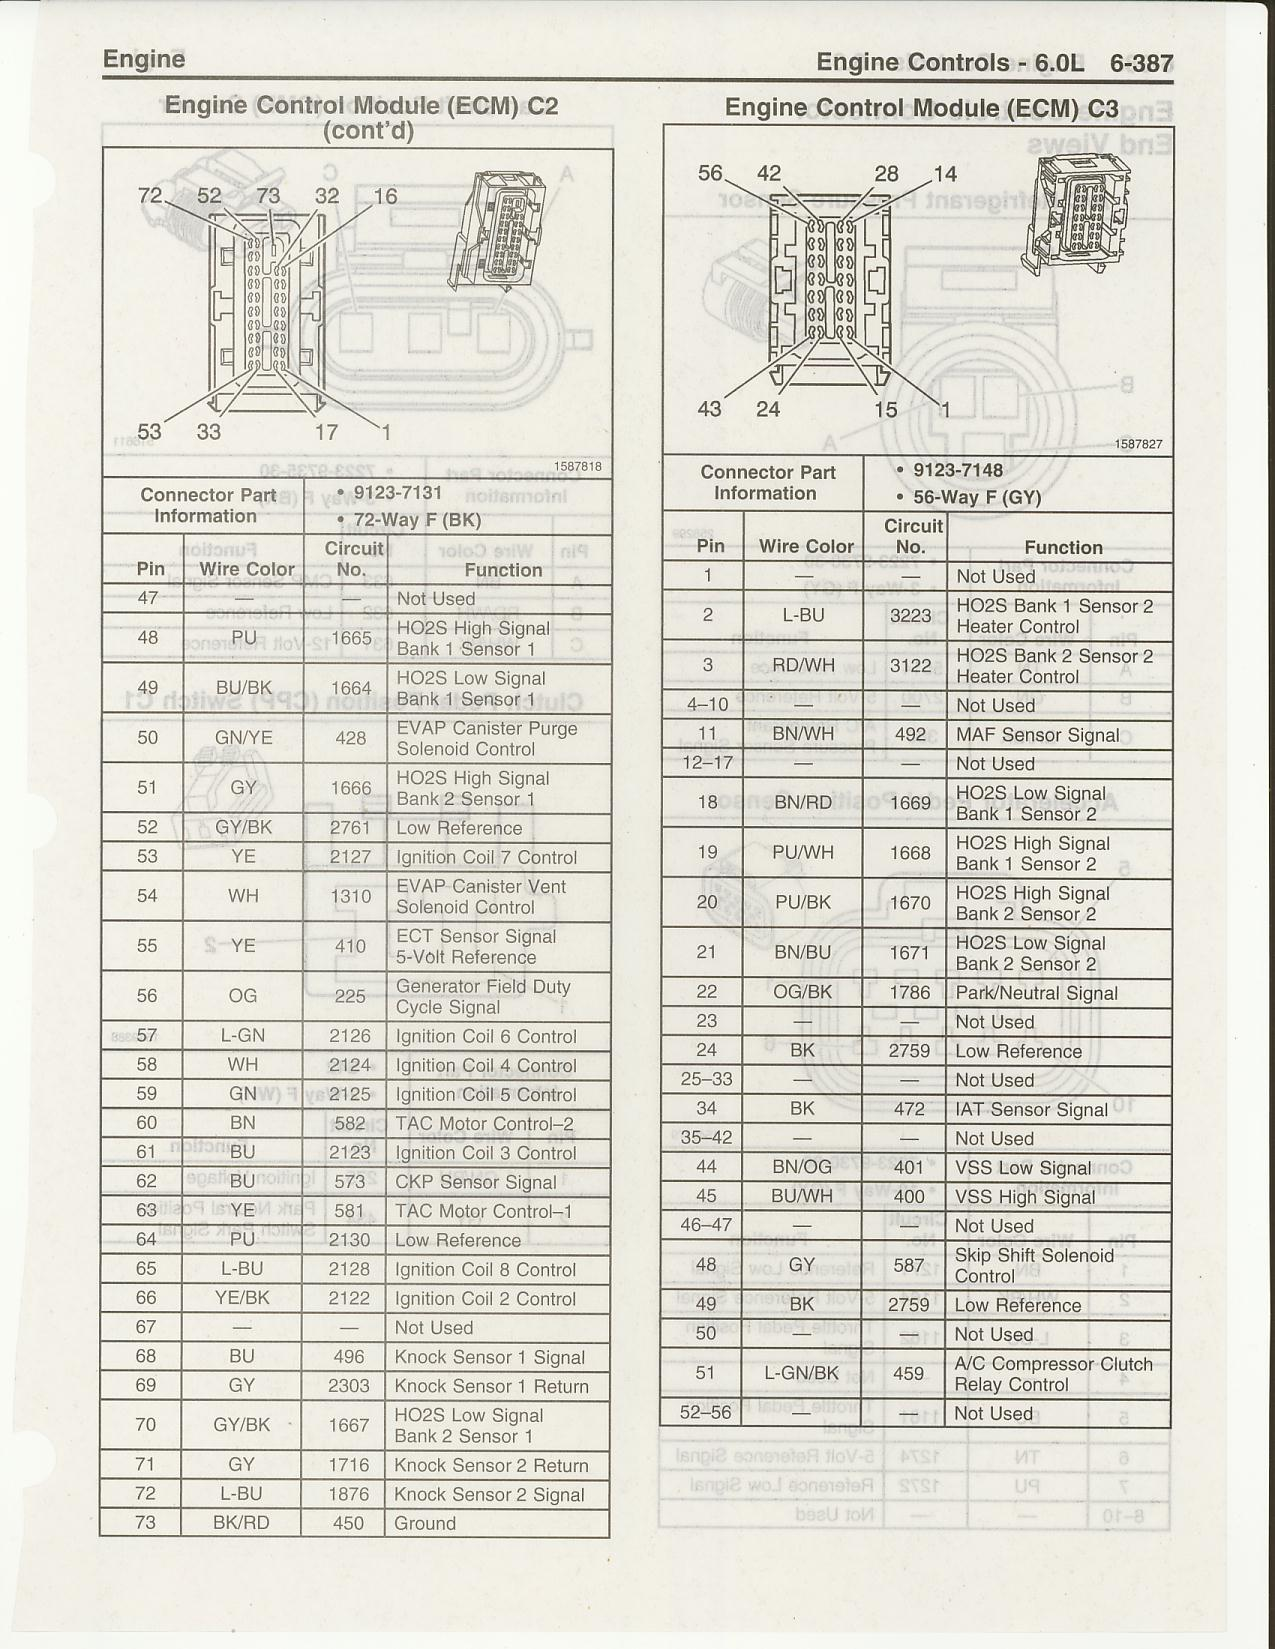 Pinouts And Wiring Diagrams Page 4 Ls1tech Camaro Firebird Gm Ls Engine Information Gto Ls2 J1